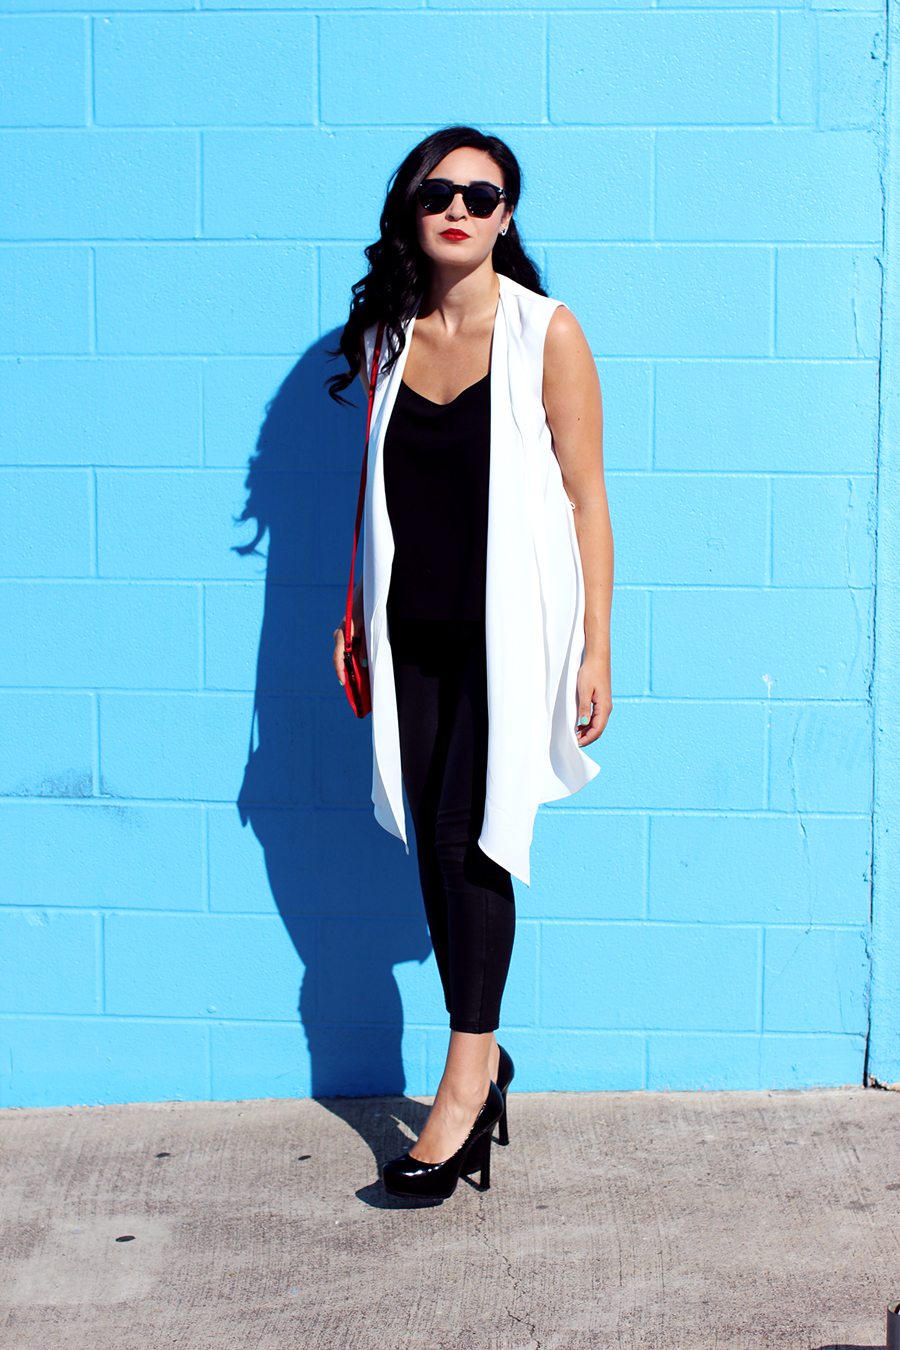 Fixin To Thrill Black Hair White Longline Vest Trendy Chic Glam Austin Fashion Blog Outfit Red